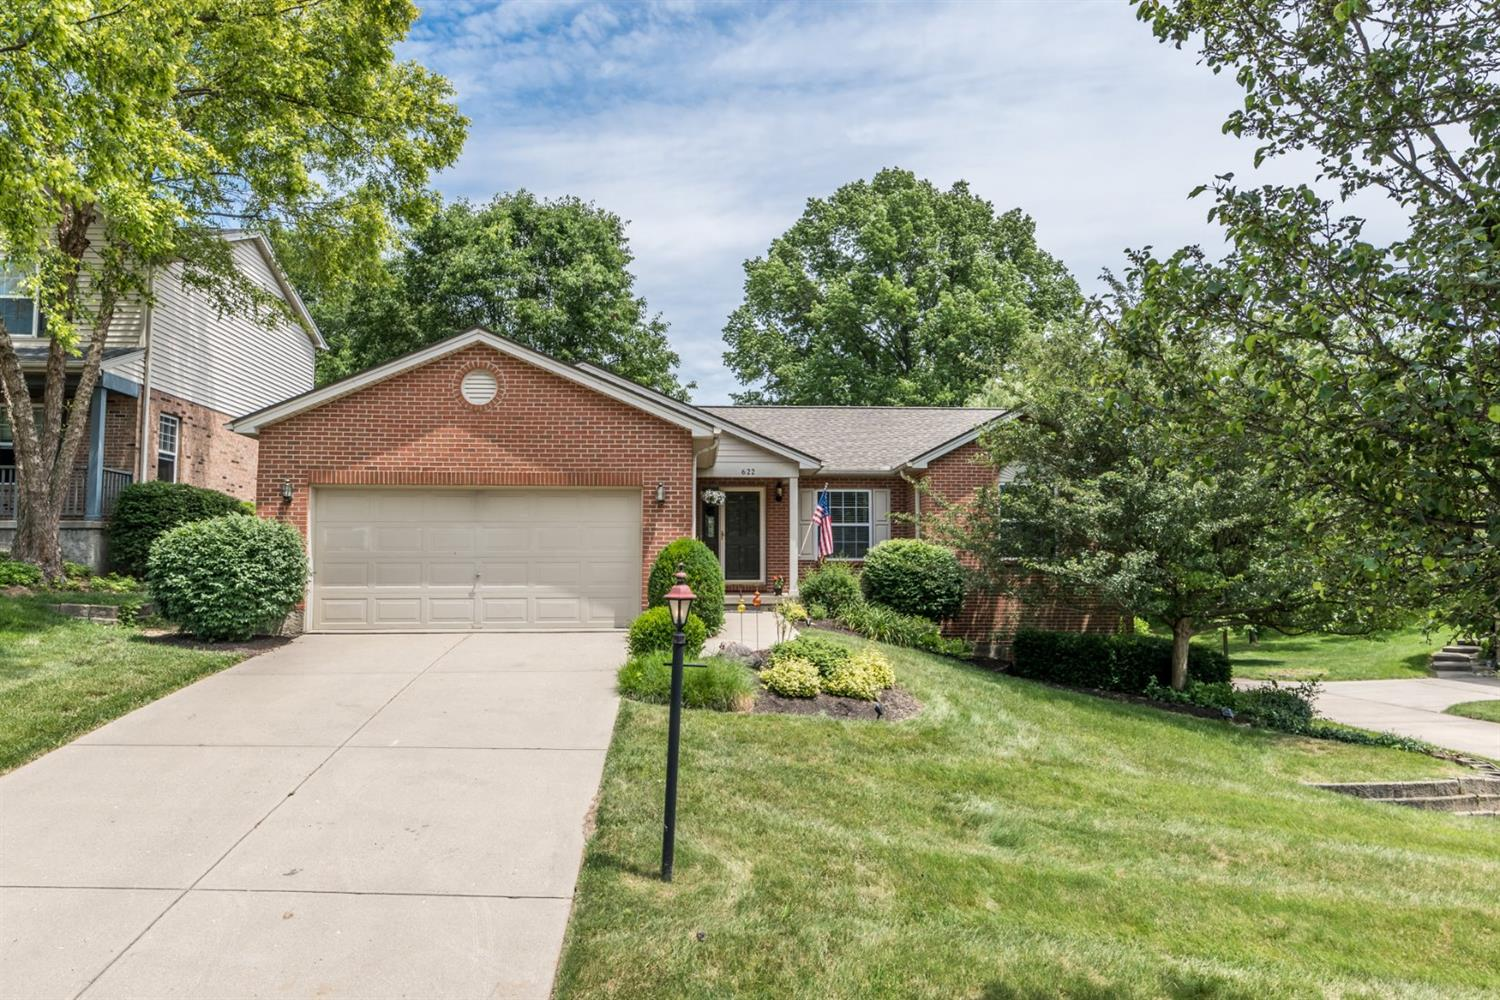 622 North Bay Ct Delhi Twp., OH